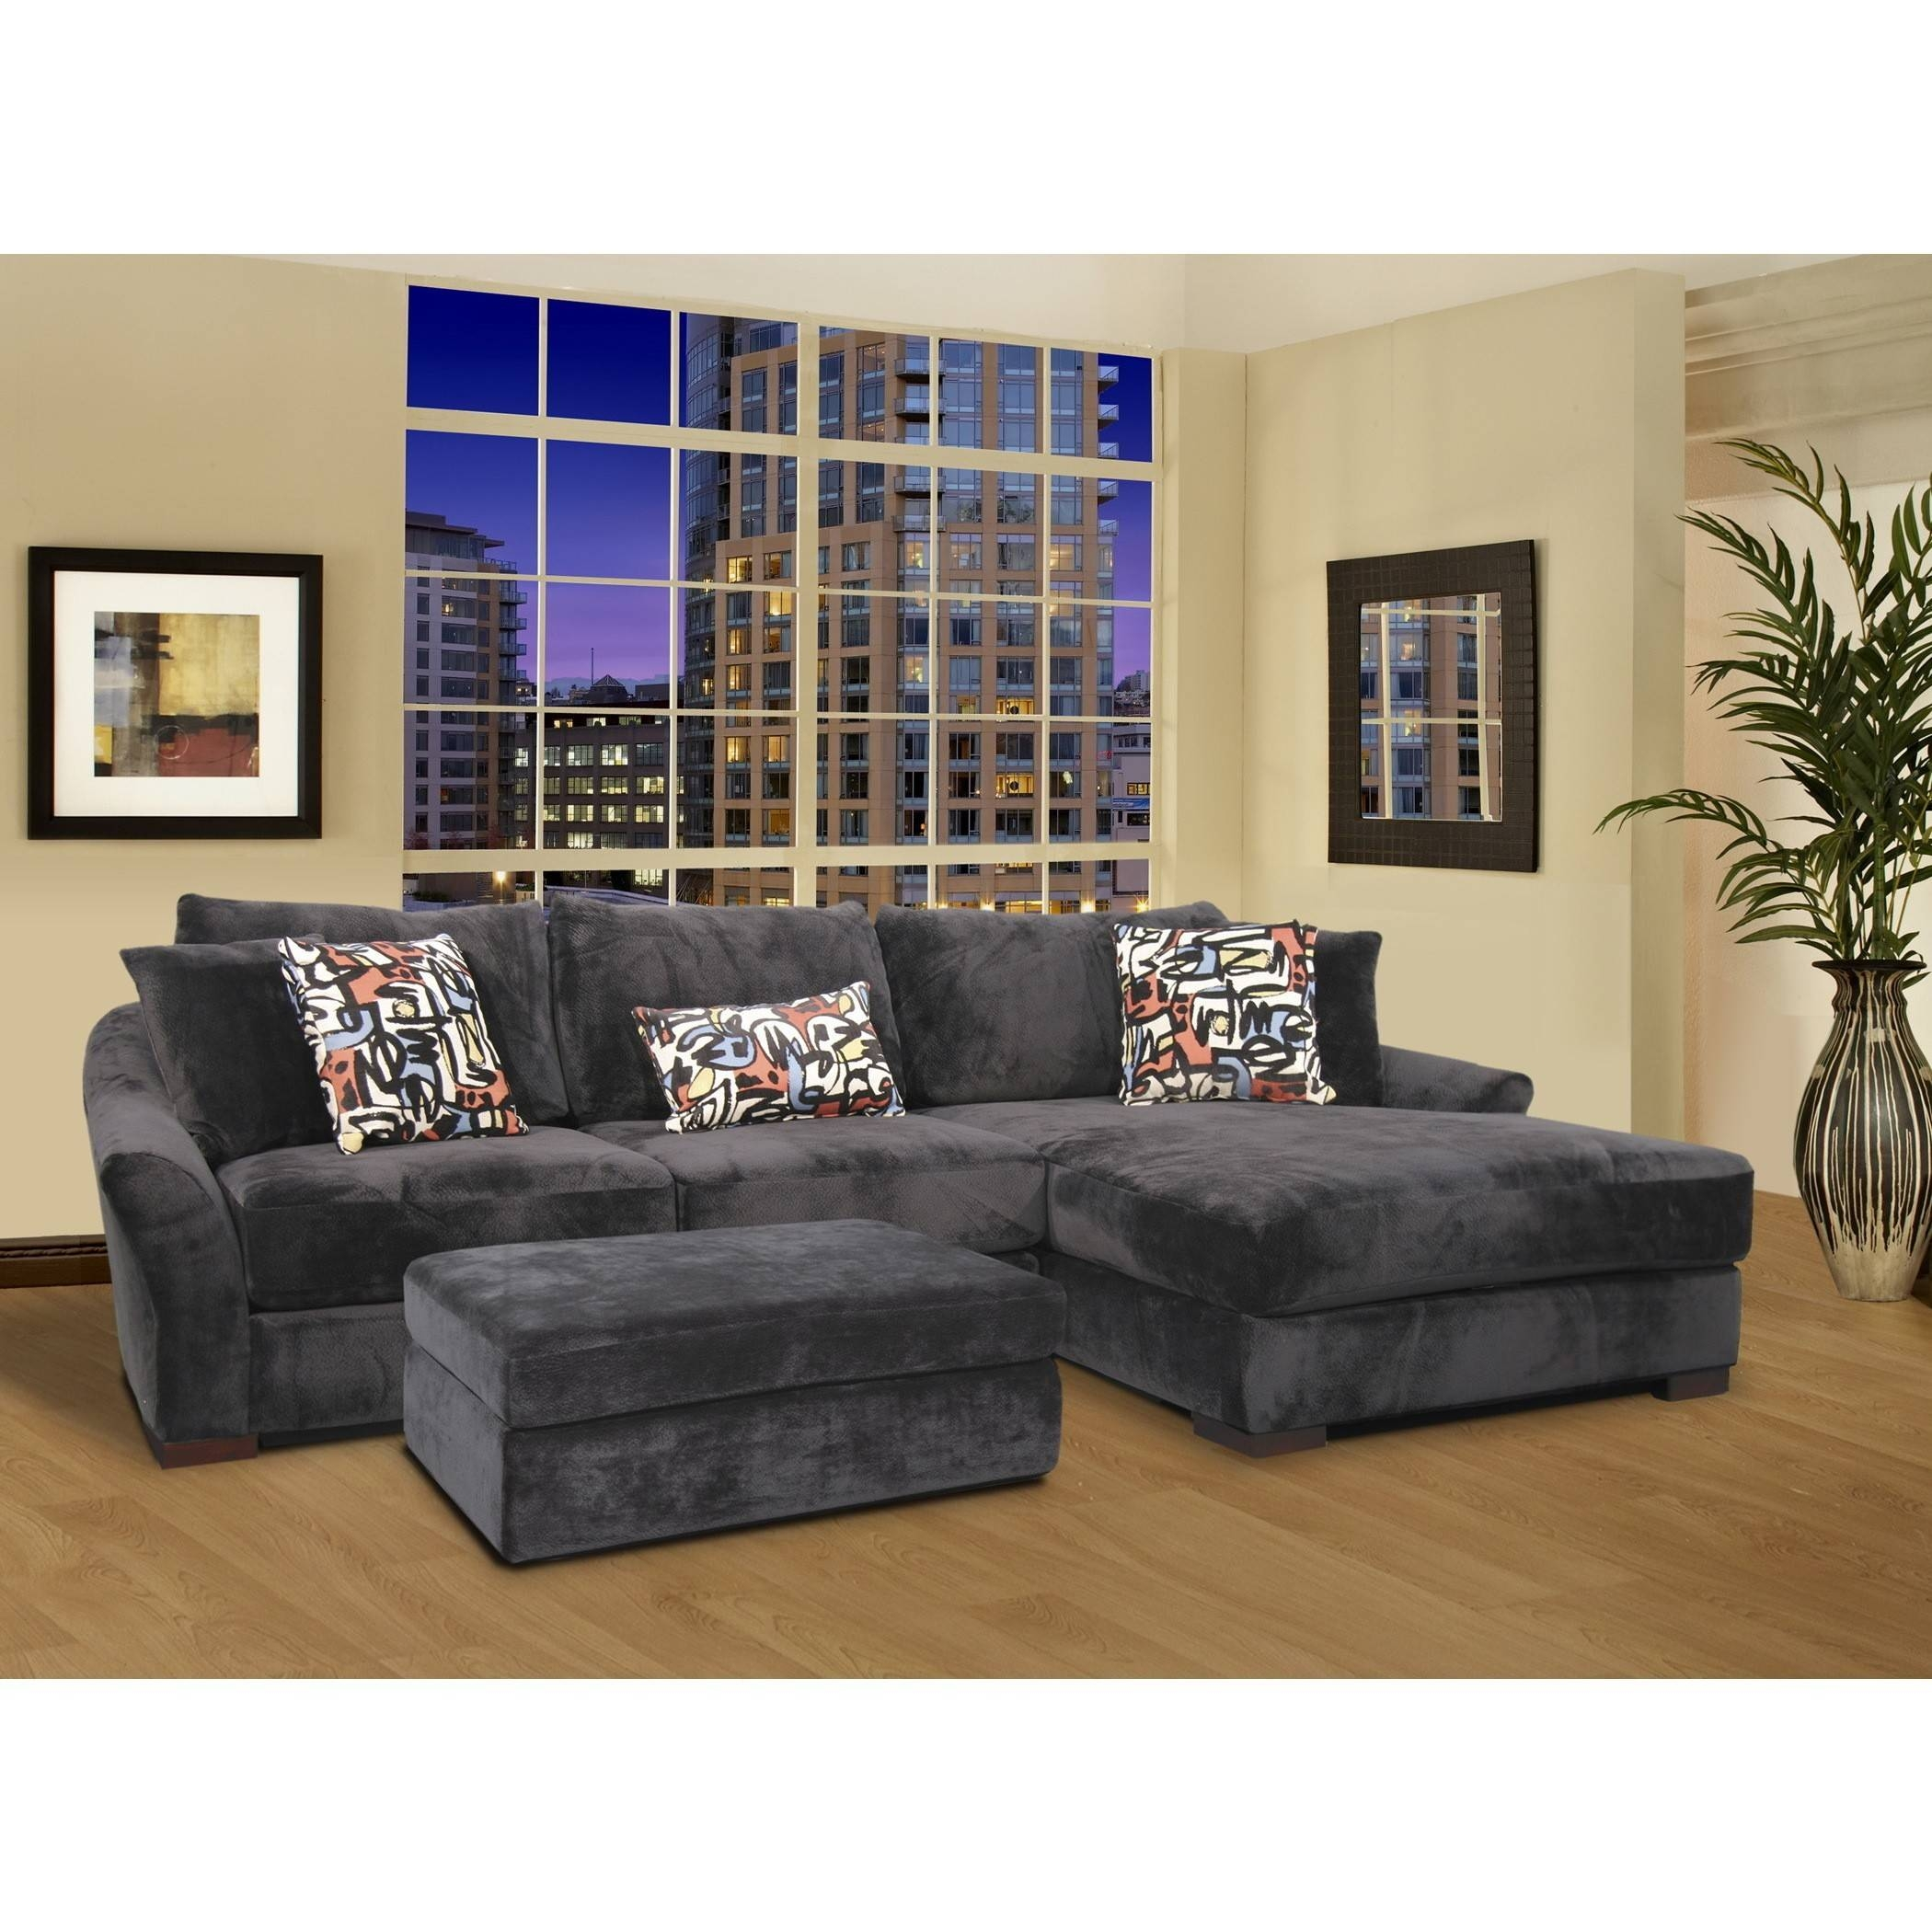 Furniture: Classic And Traditional Style Velvet Sectional Sofa For with Oversized Sectional Sofa (Image 4 of 30)